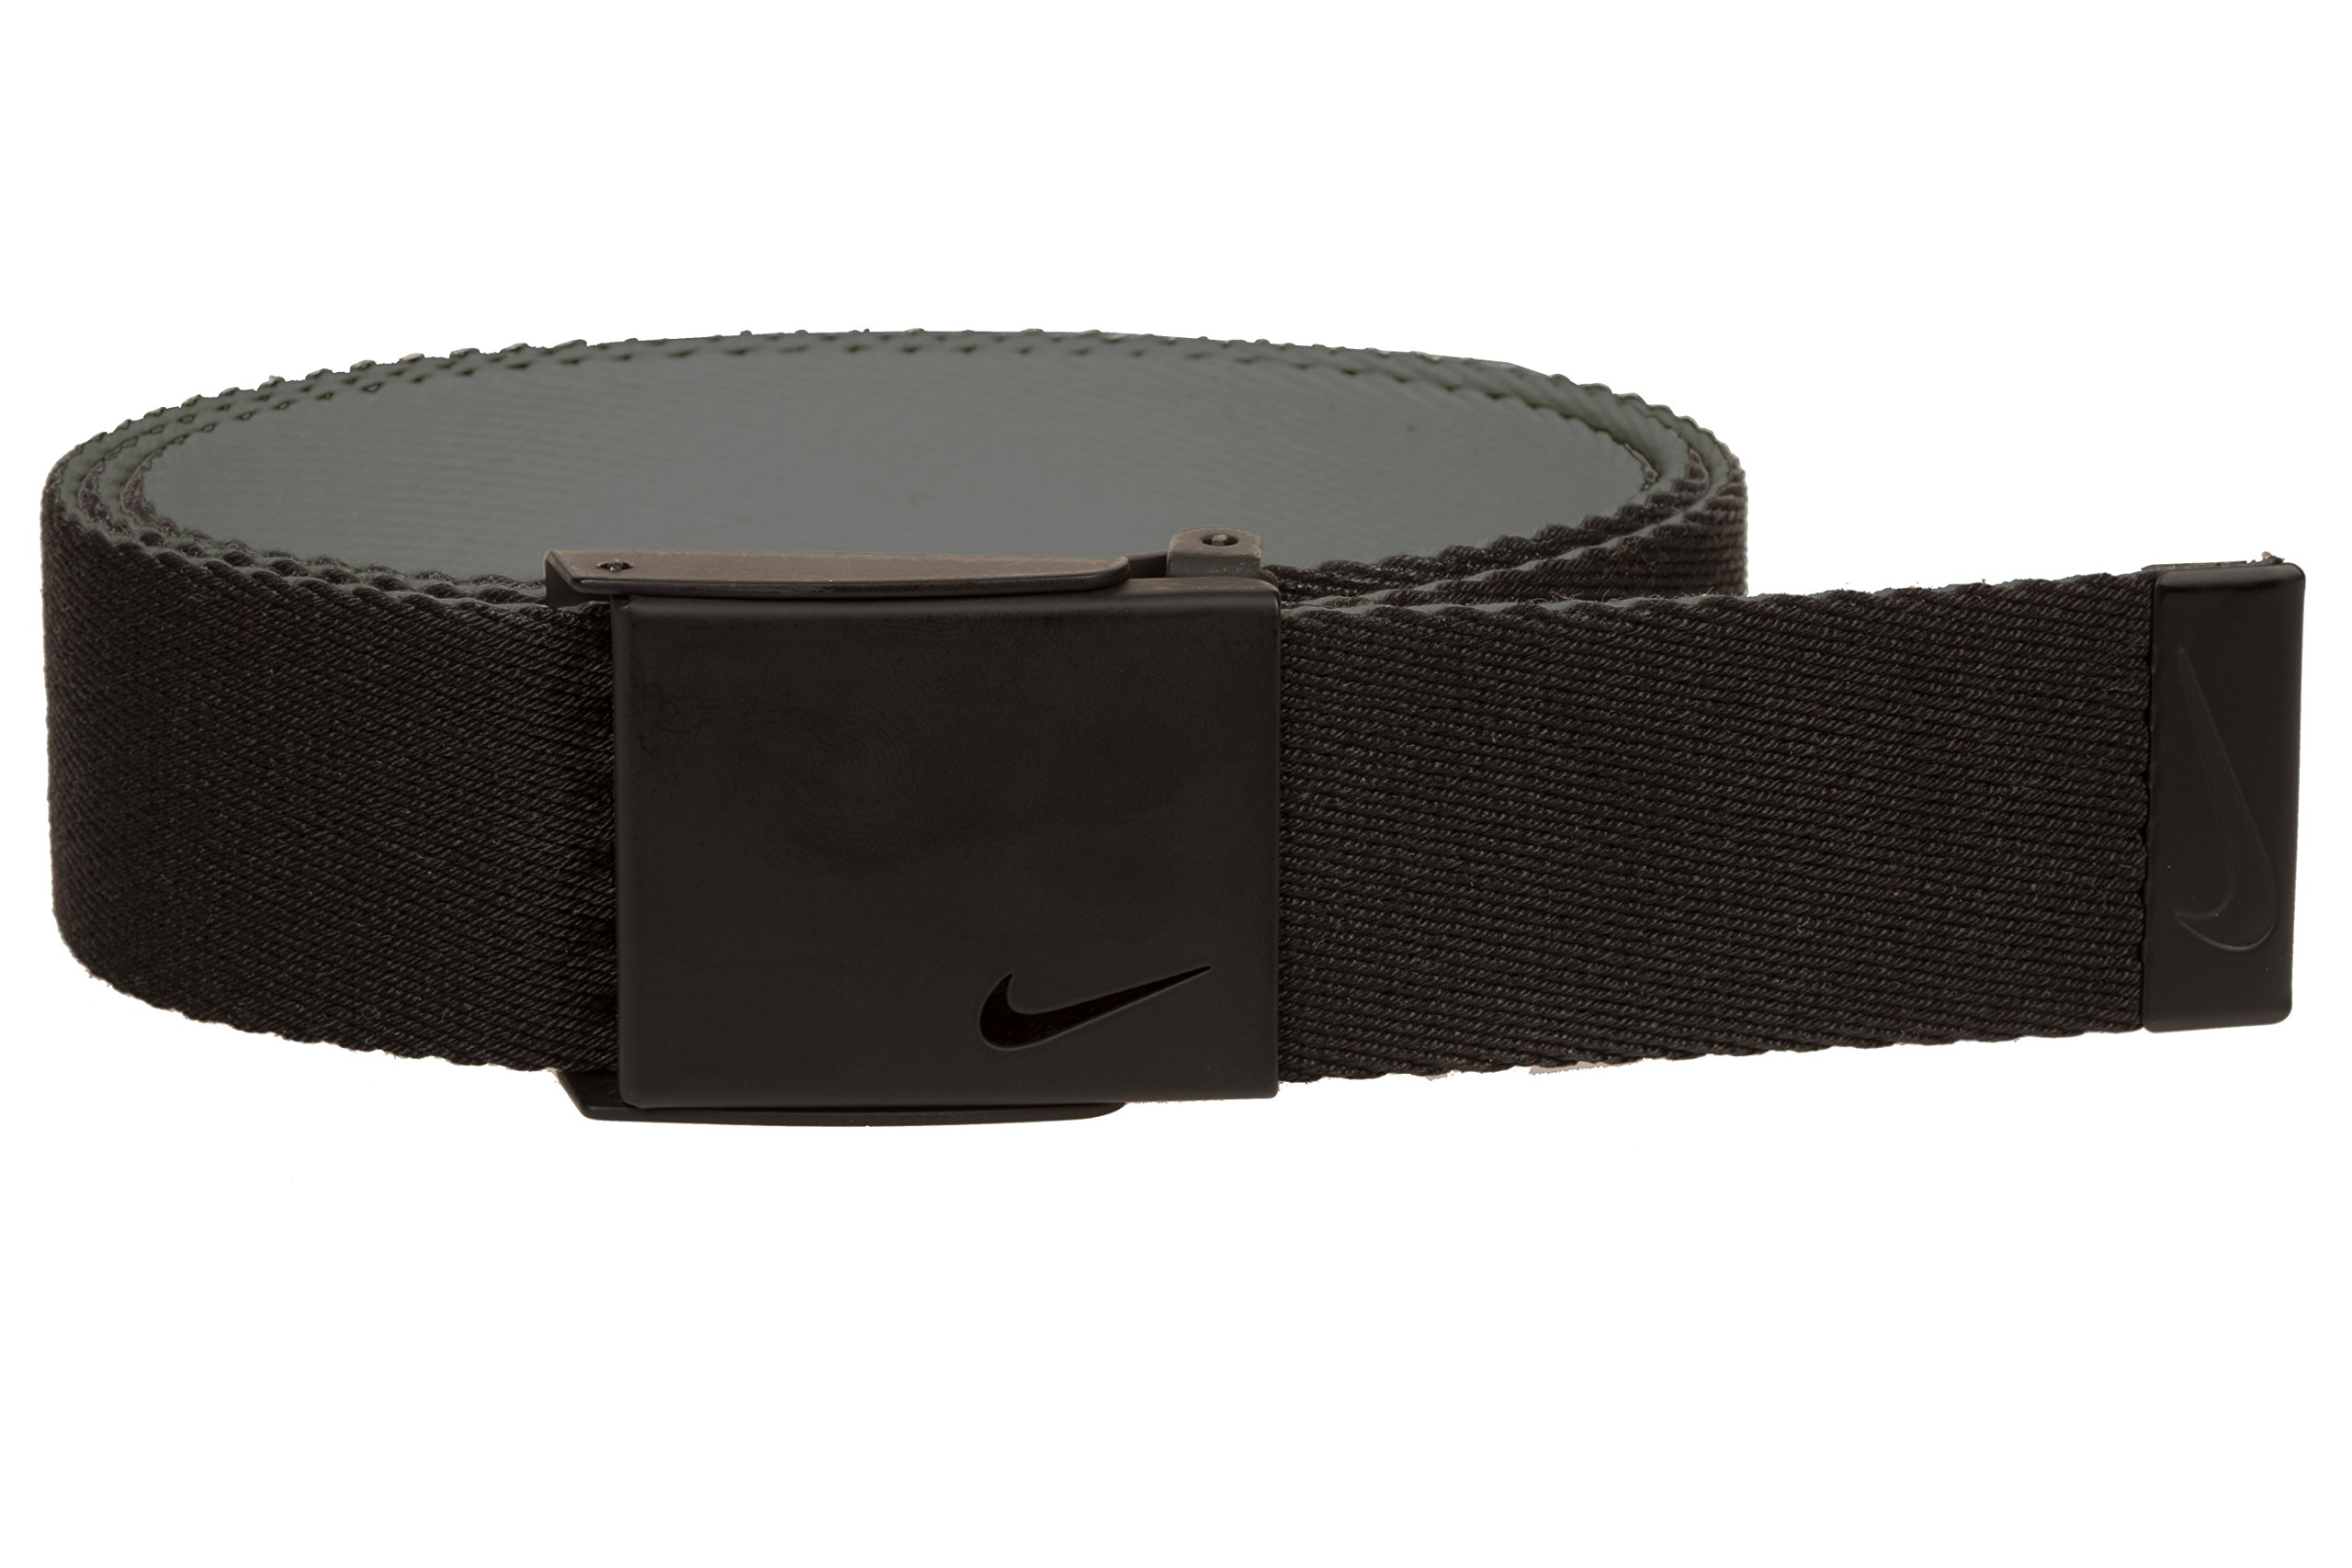 Nike Men's New Tech Essentials Reversible Web Belt, Black/Charcoal, One Size